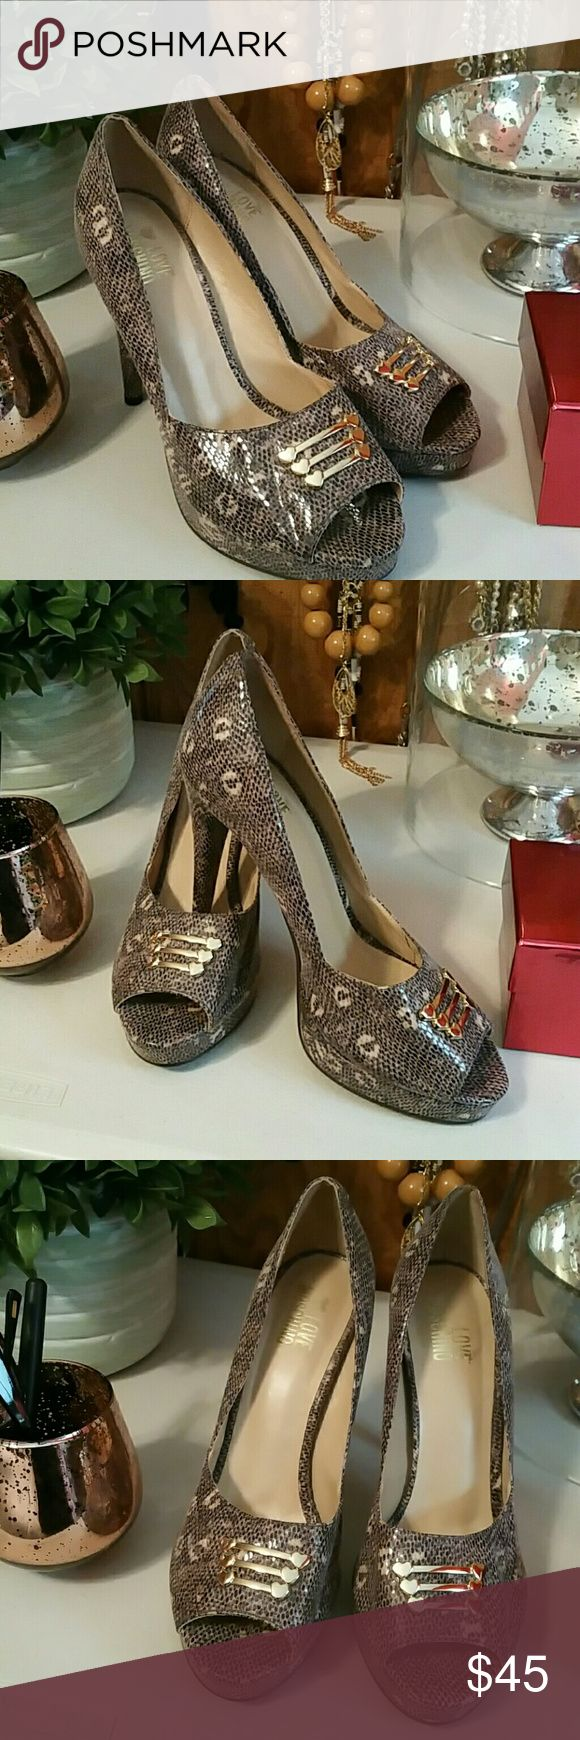 ANIMAL PRINT HIGH HEELS Very good condition moschino Shoes Heels